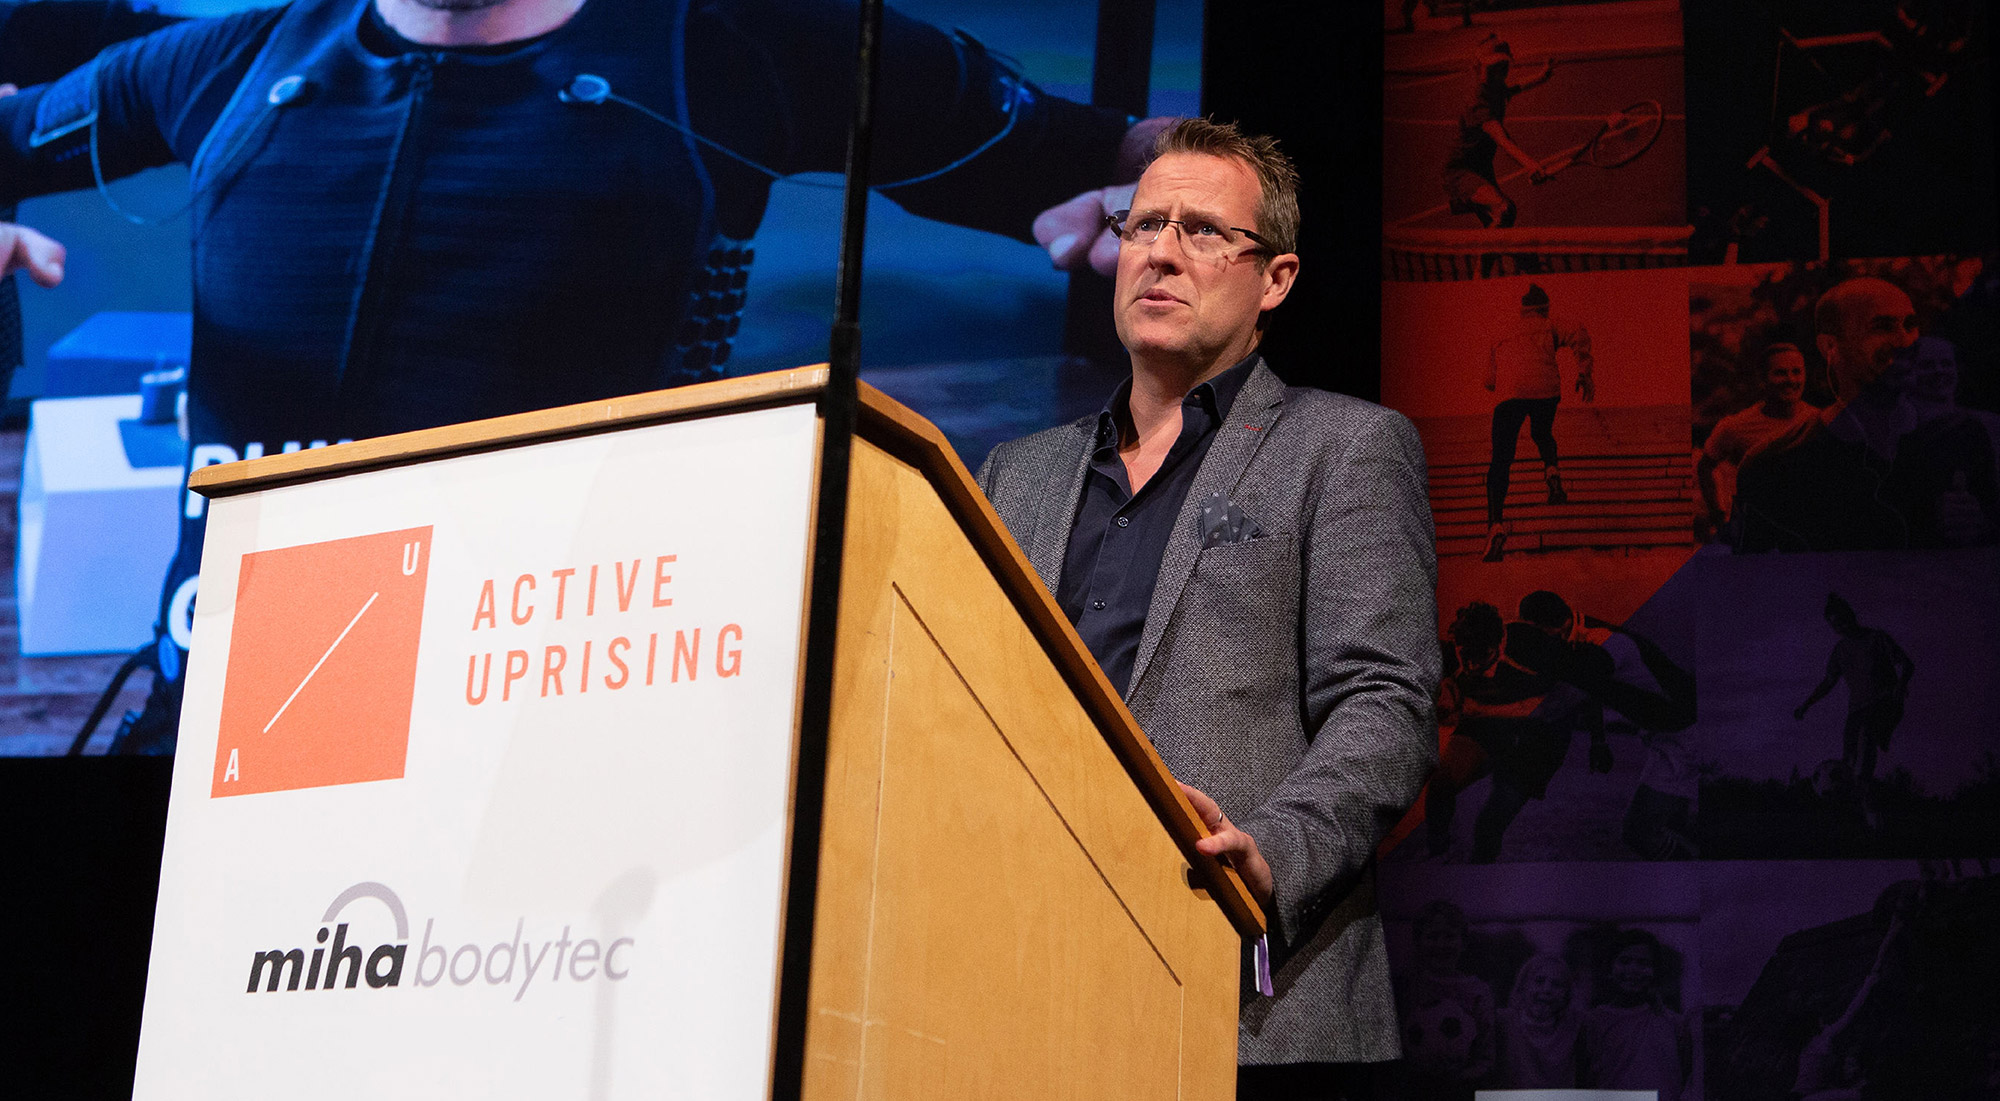 miha bodytec extends partnership with ukactive's flagship events